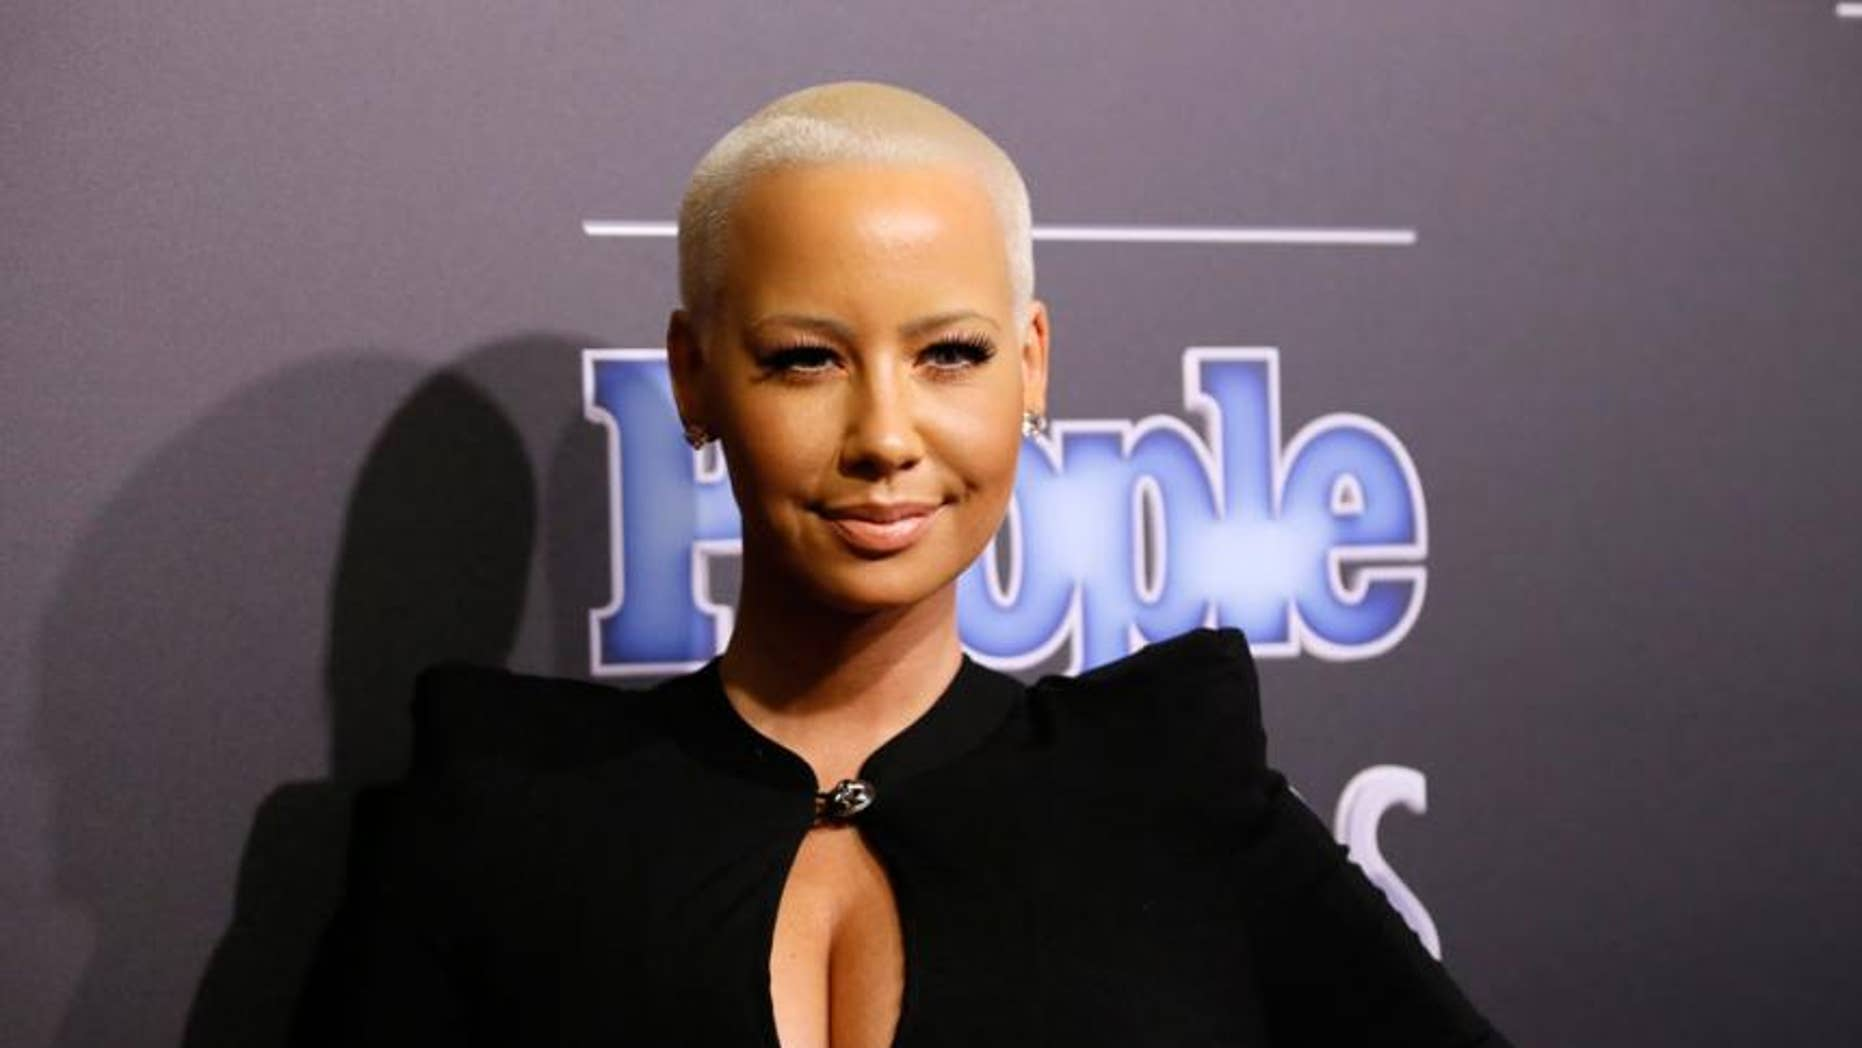 Amber Rose tried to sell crack, but was 'too pretty'